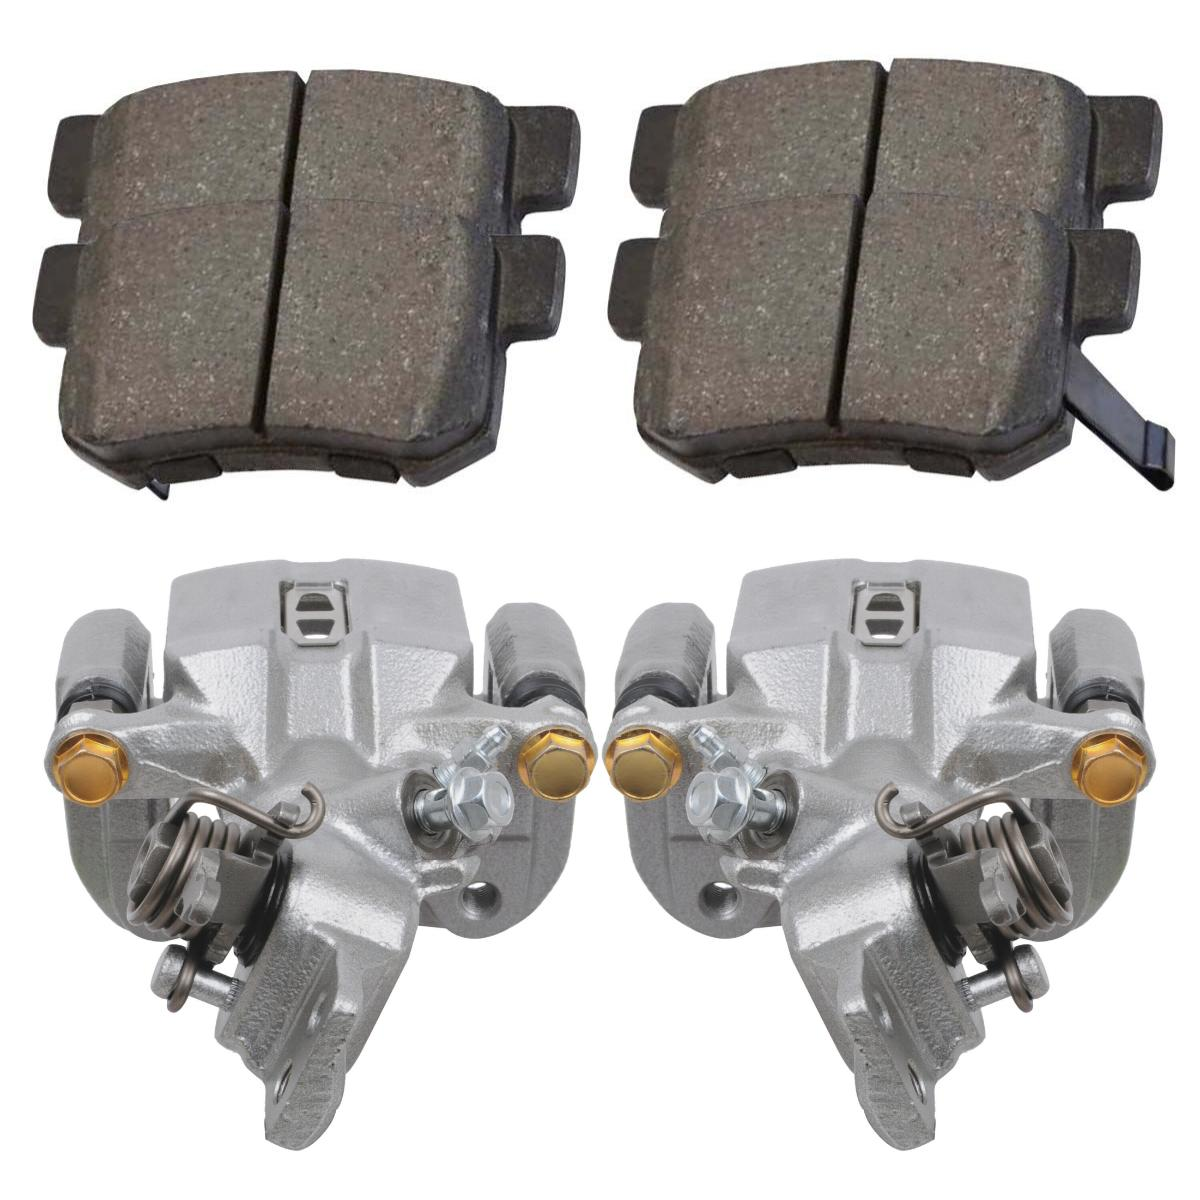 PCD537 REAR Premium Ceramic Brake Pads Fits 2004-2008 Acura TSX